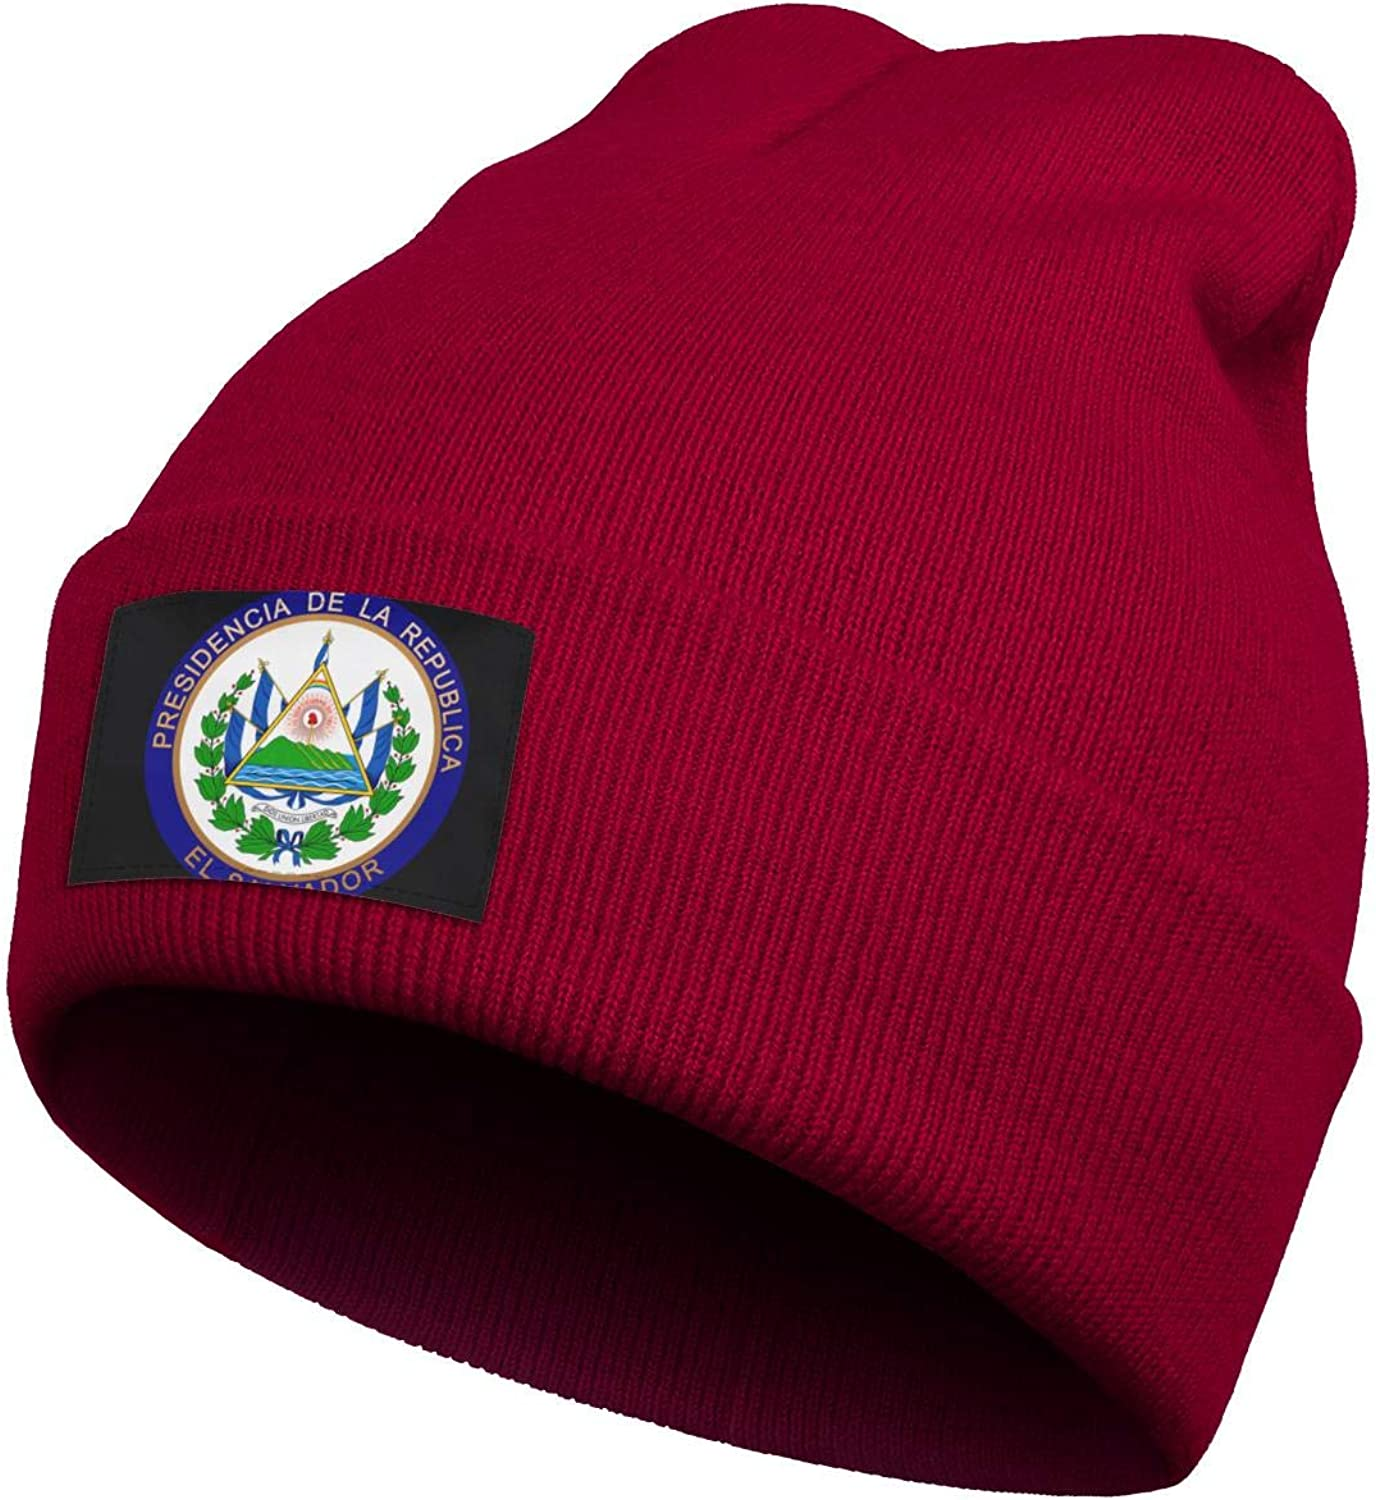 Beanie Hats for Men Womens El-Salvador-Seal-of-The-President Acrylic Woolen Cap